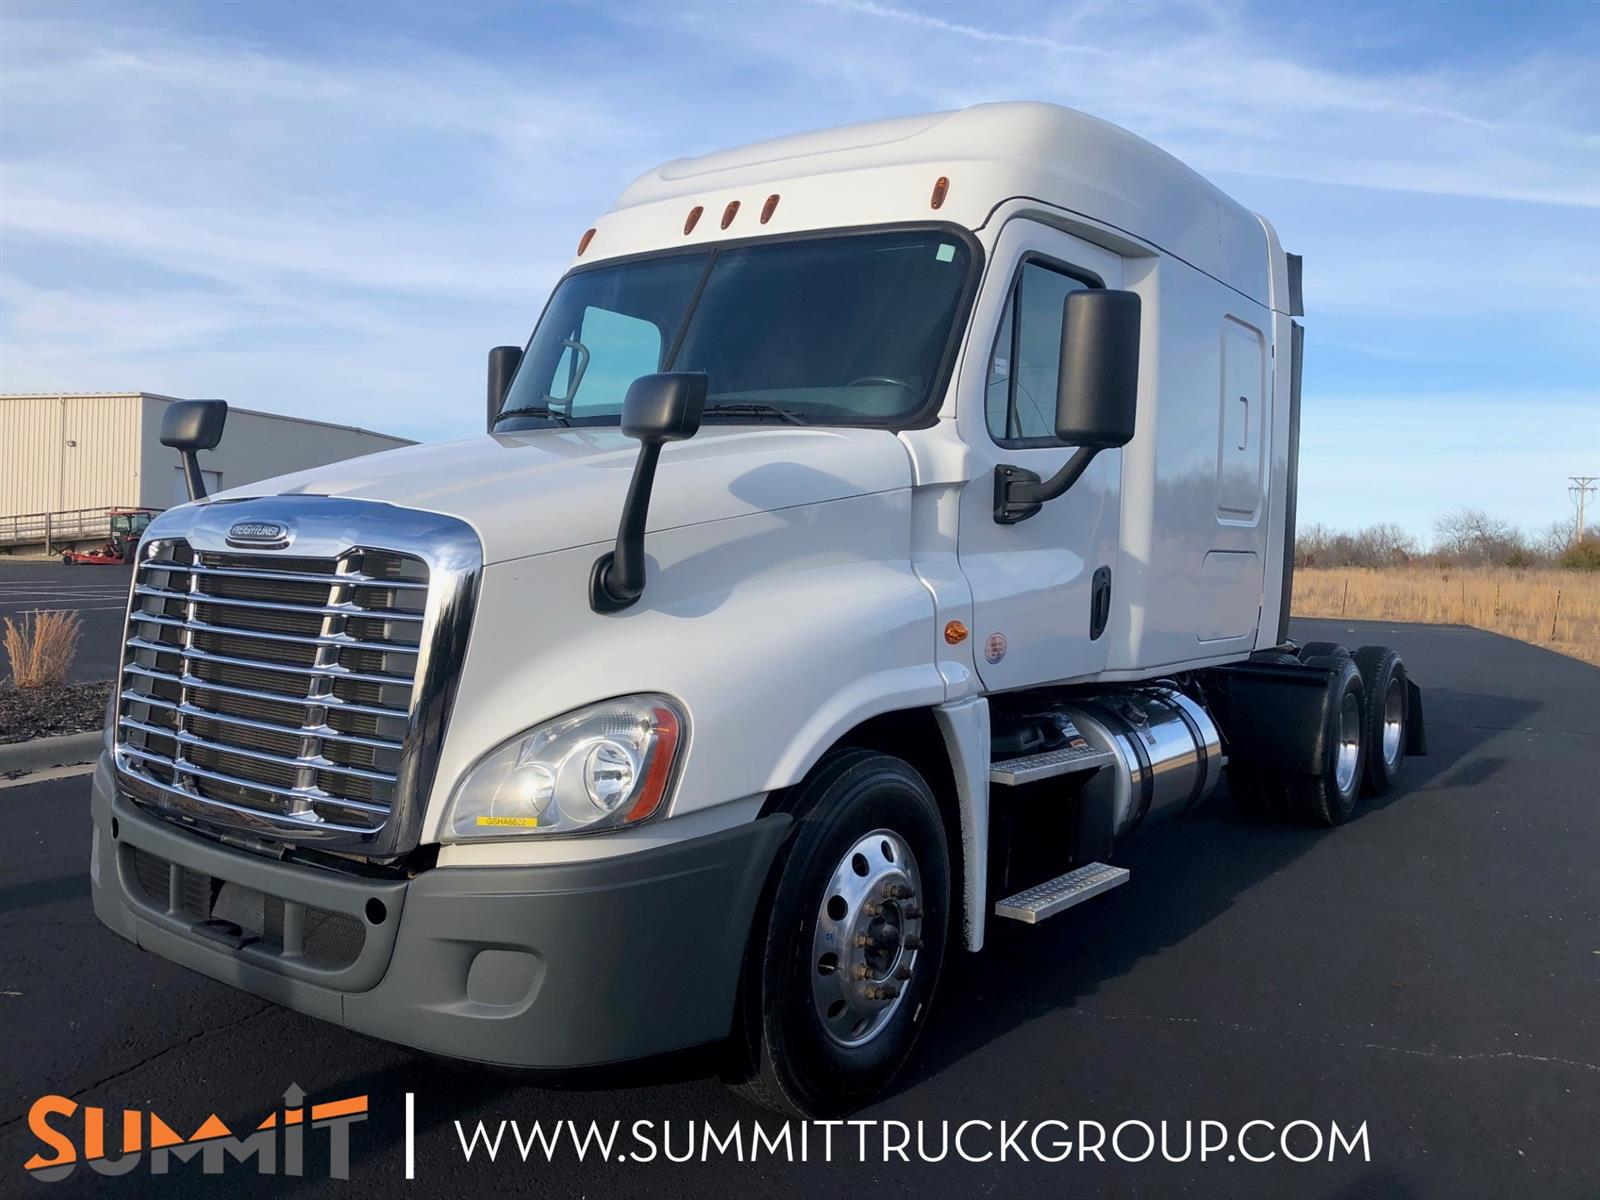 2016 Freightliner Truck Sleeper Cab 6x4, Tractor #150P202436 - photo 1